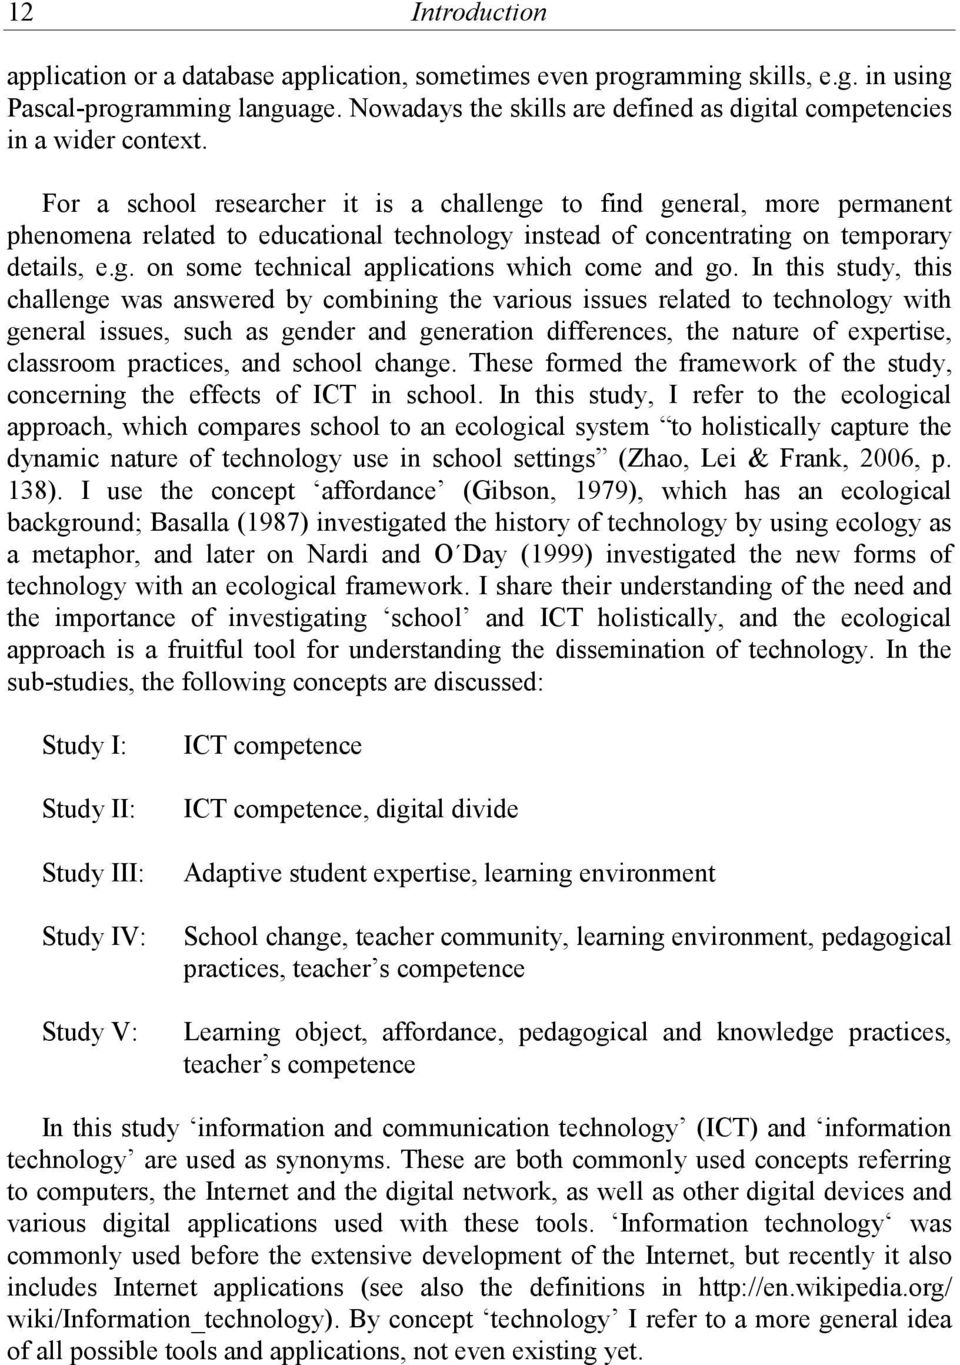 For a school researcher it is a challenge to find general, more permanent phenomena related to educational technology instead of concentrating on temporary details, e.g. on some technical applications which come and go.